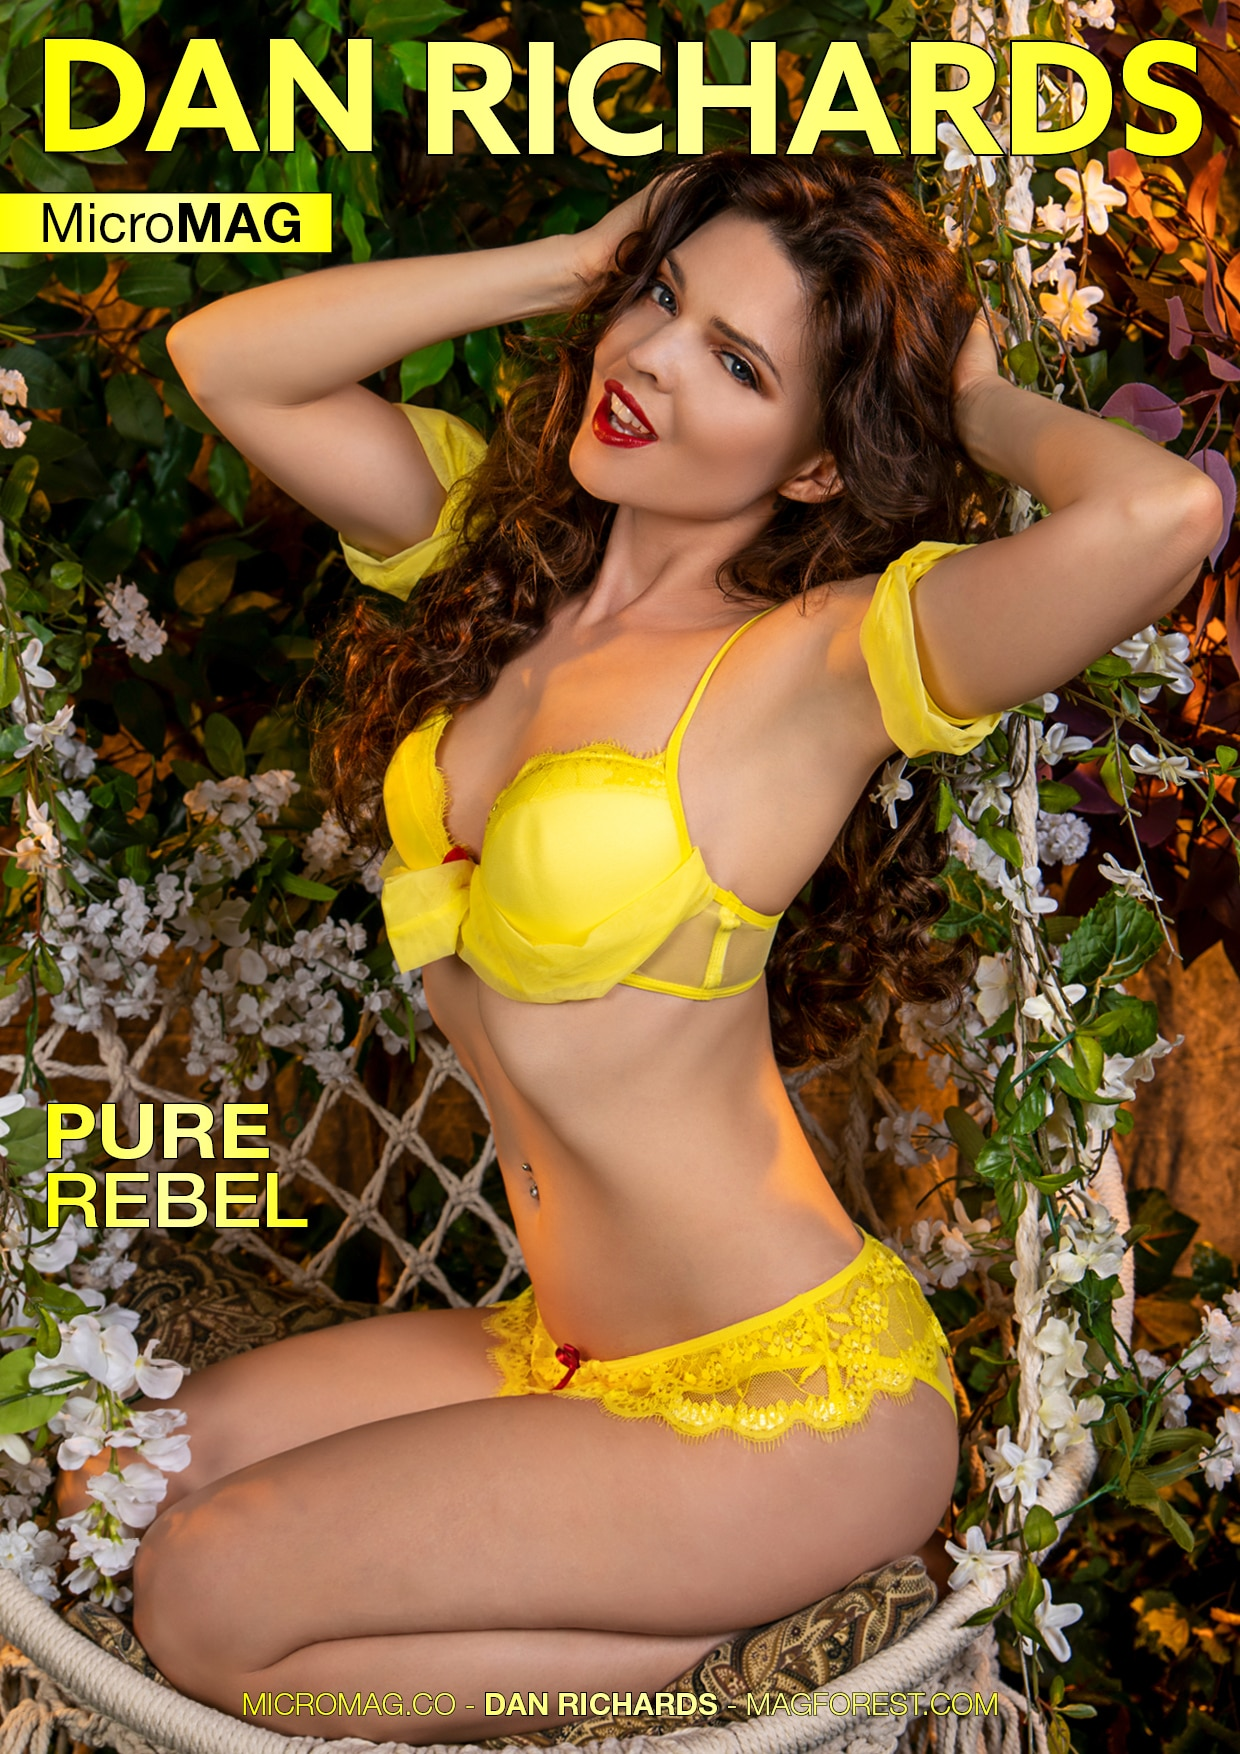 Dan Richards MicroMAG - Pure Rebel - Issue 3 3